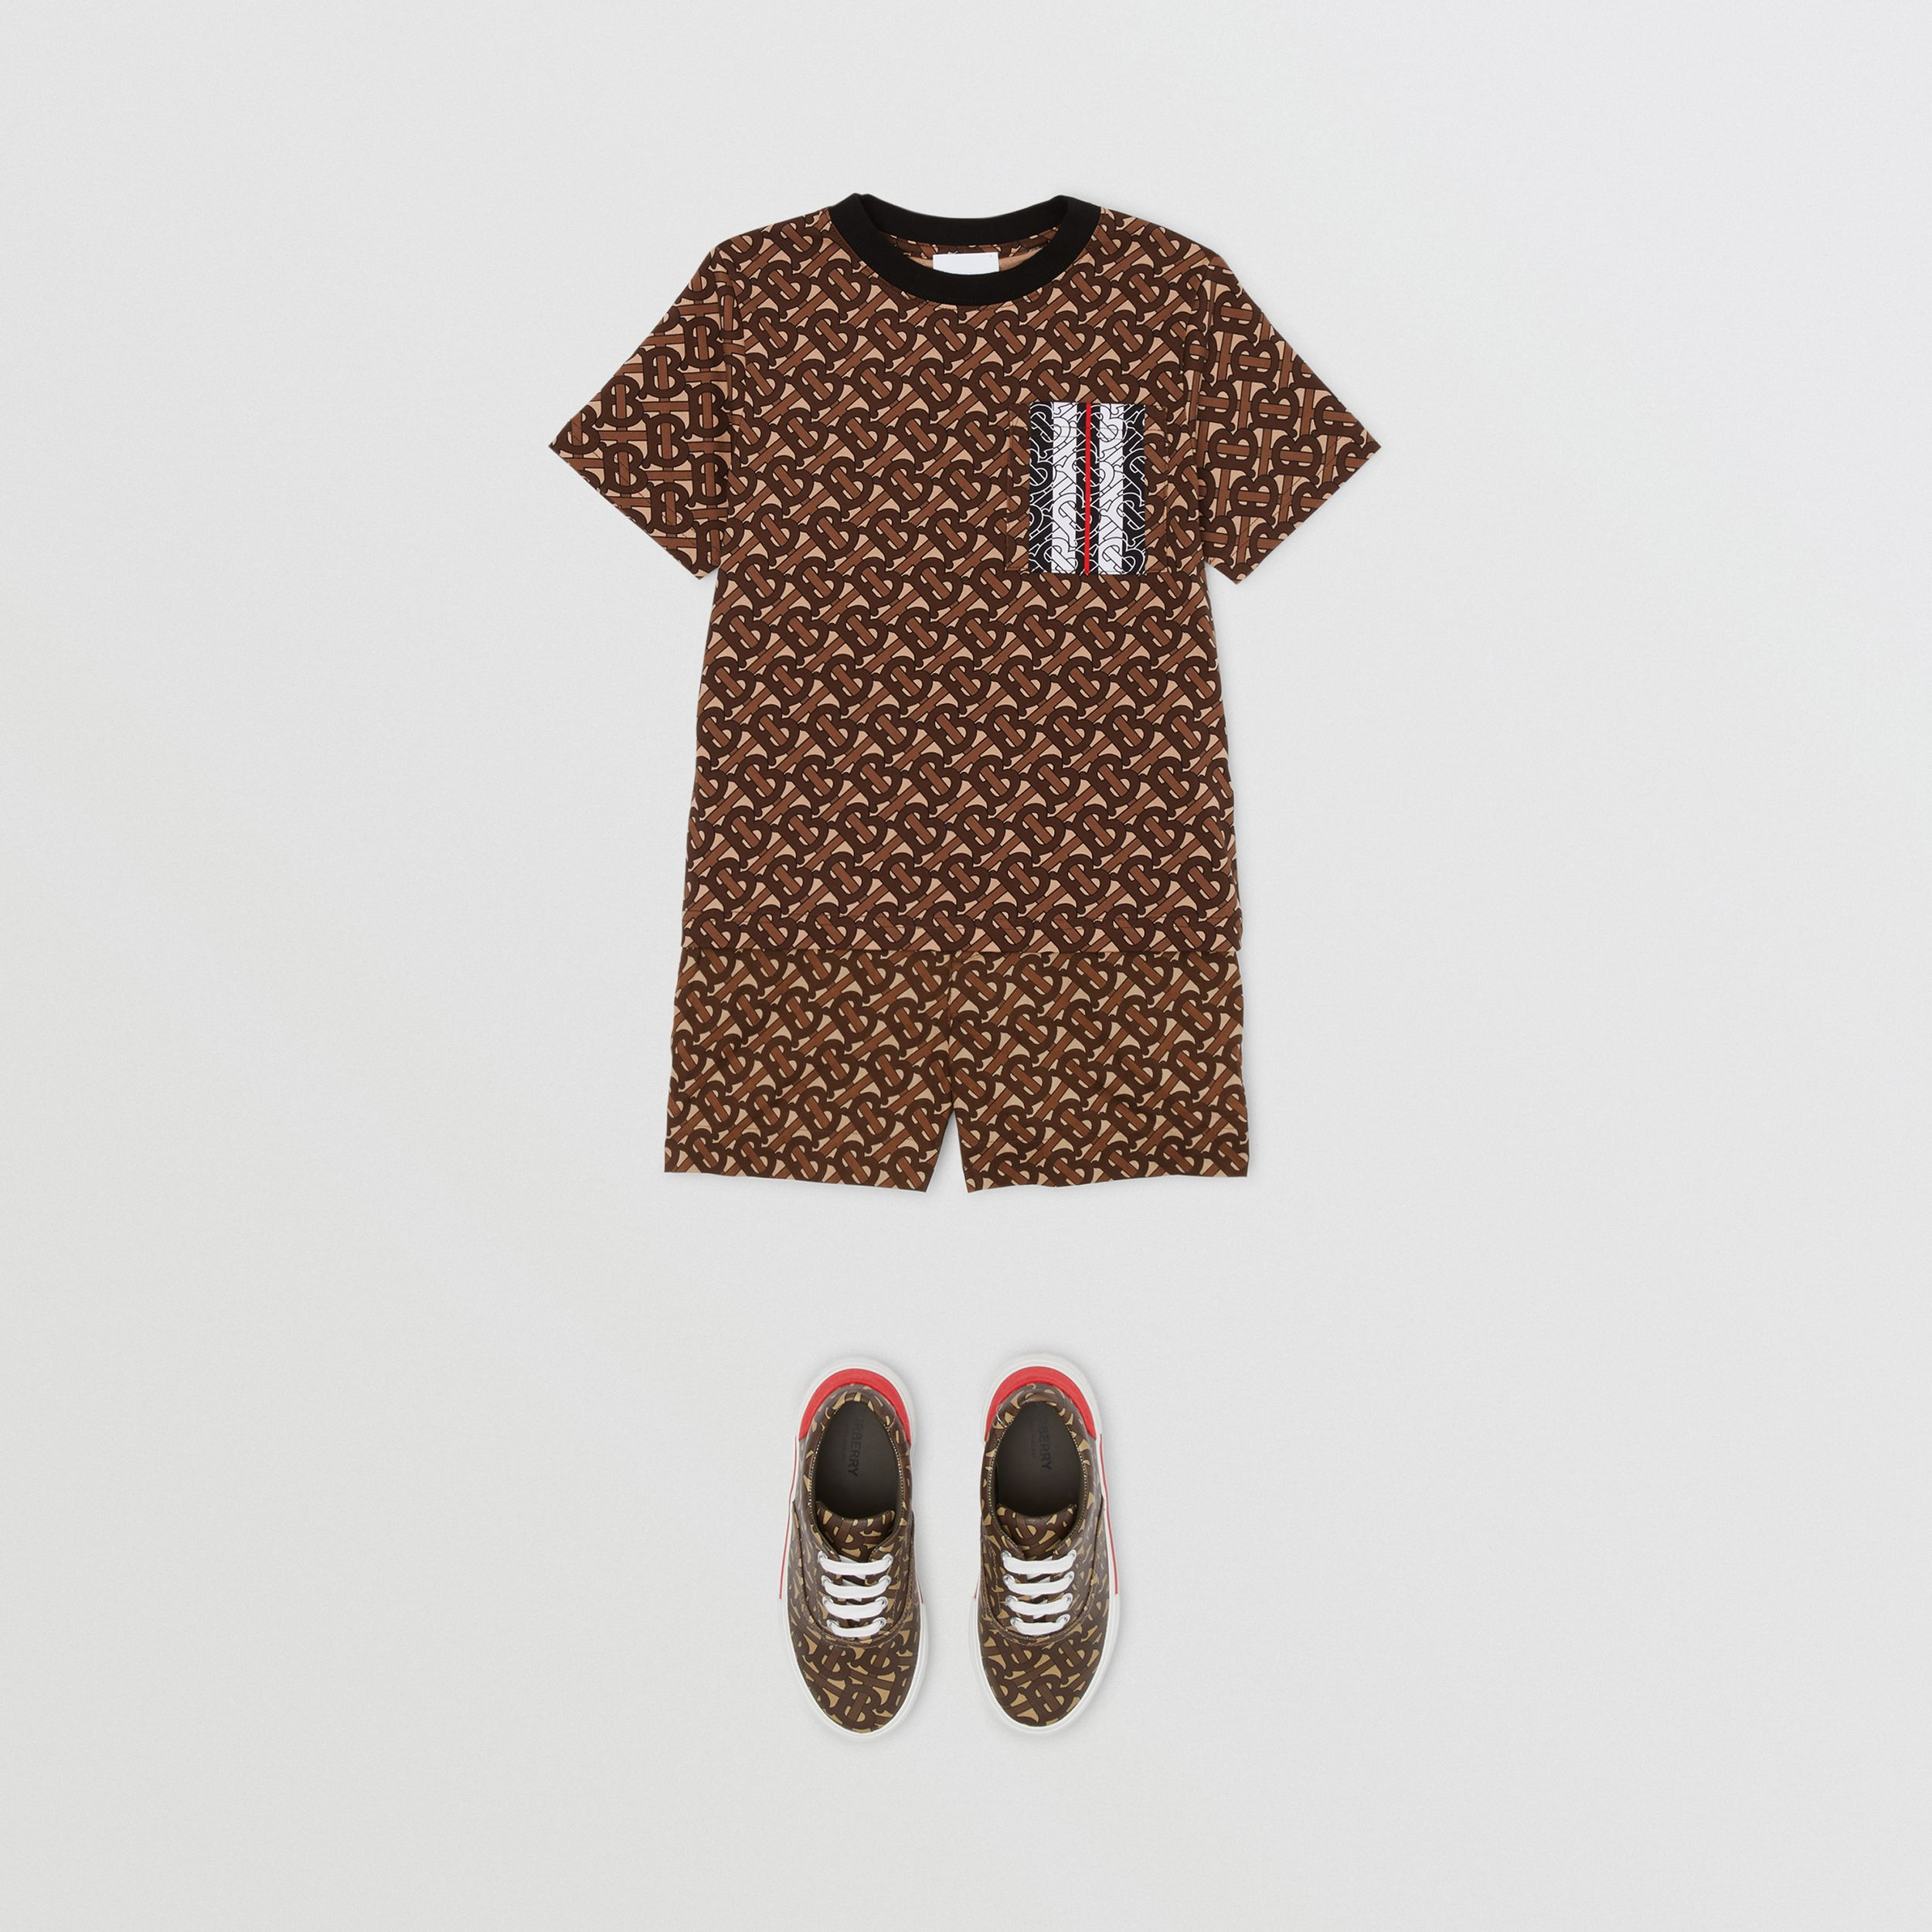 Monogram Stripe Print Cotton T-shirt in Bridle Brown | Burberry Canada - 4